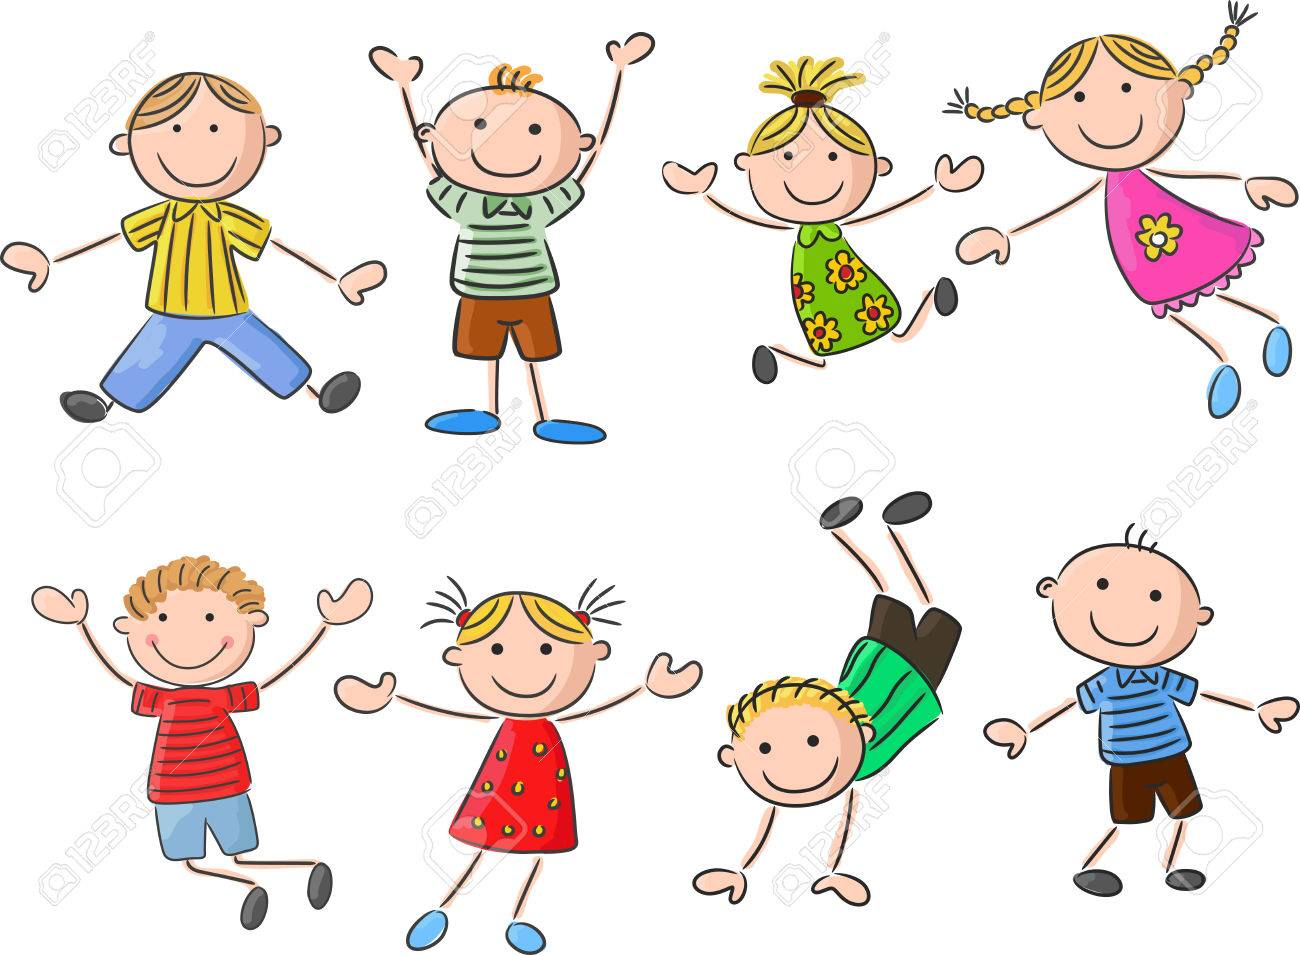 Many Happy Kid Cartoon Jumping And Dancing Together Stock Vector